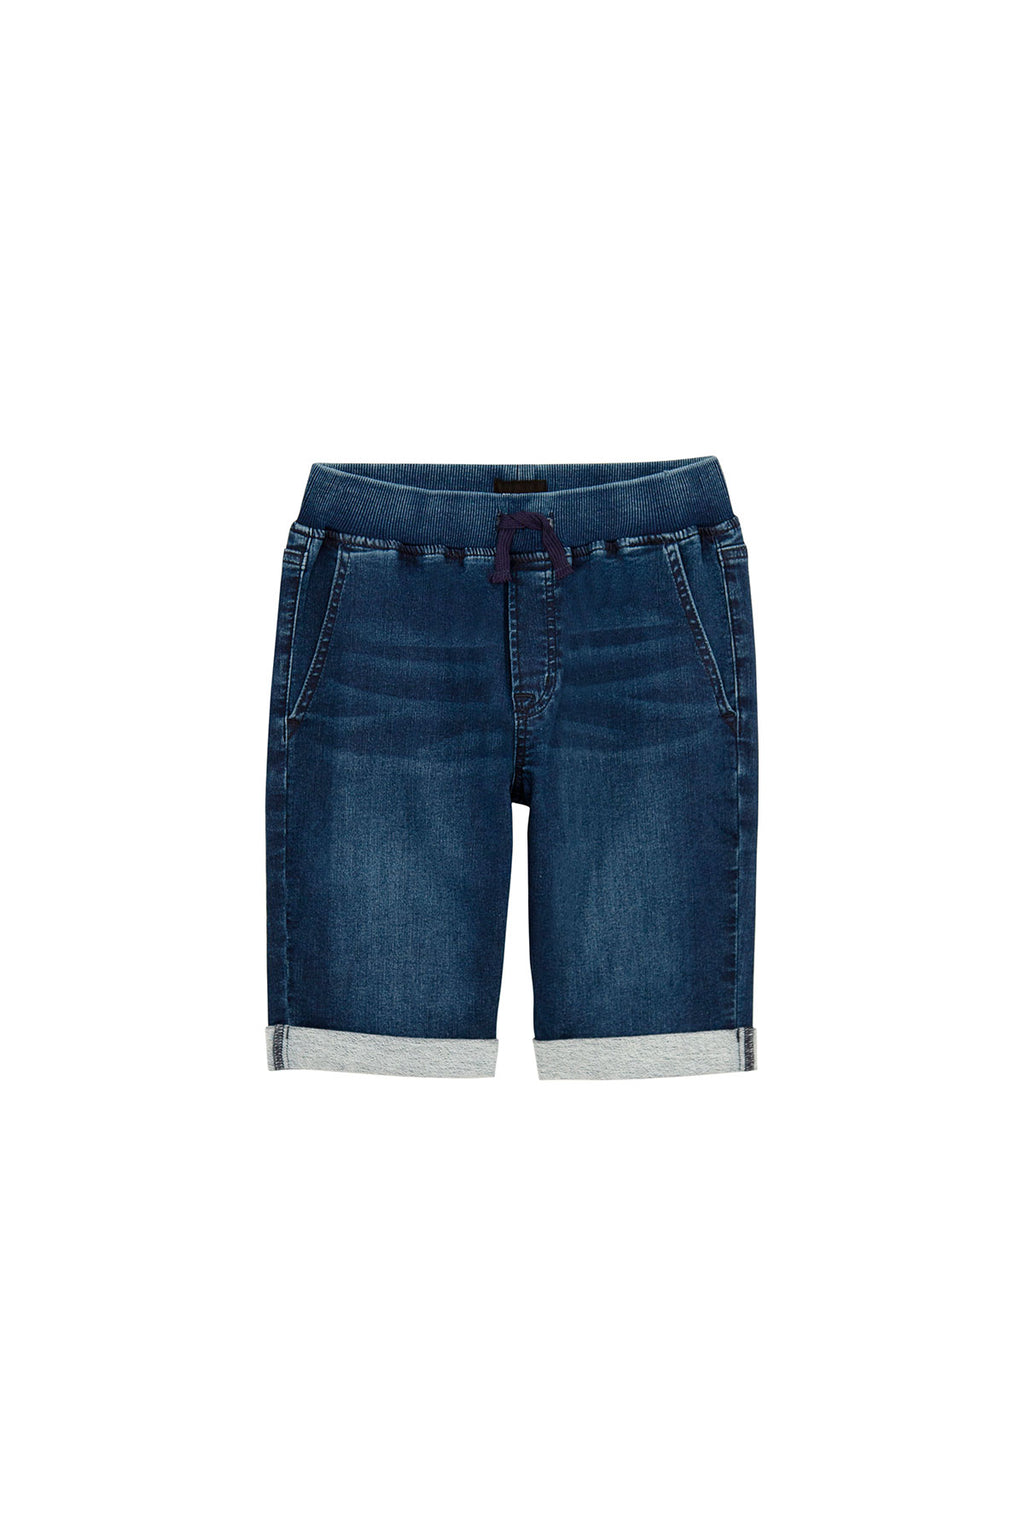 BOYS TAJ SHORT, SIZES 8-20 - CROSS BONES - Image 1